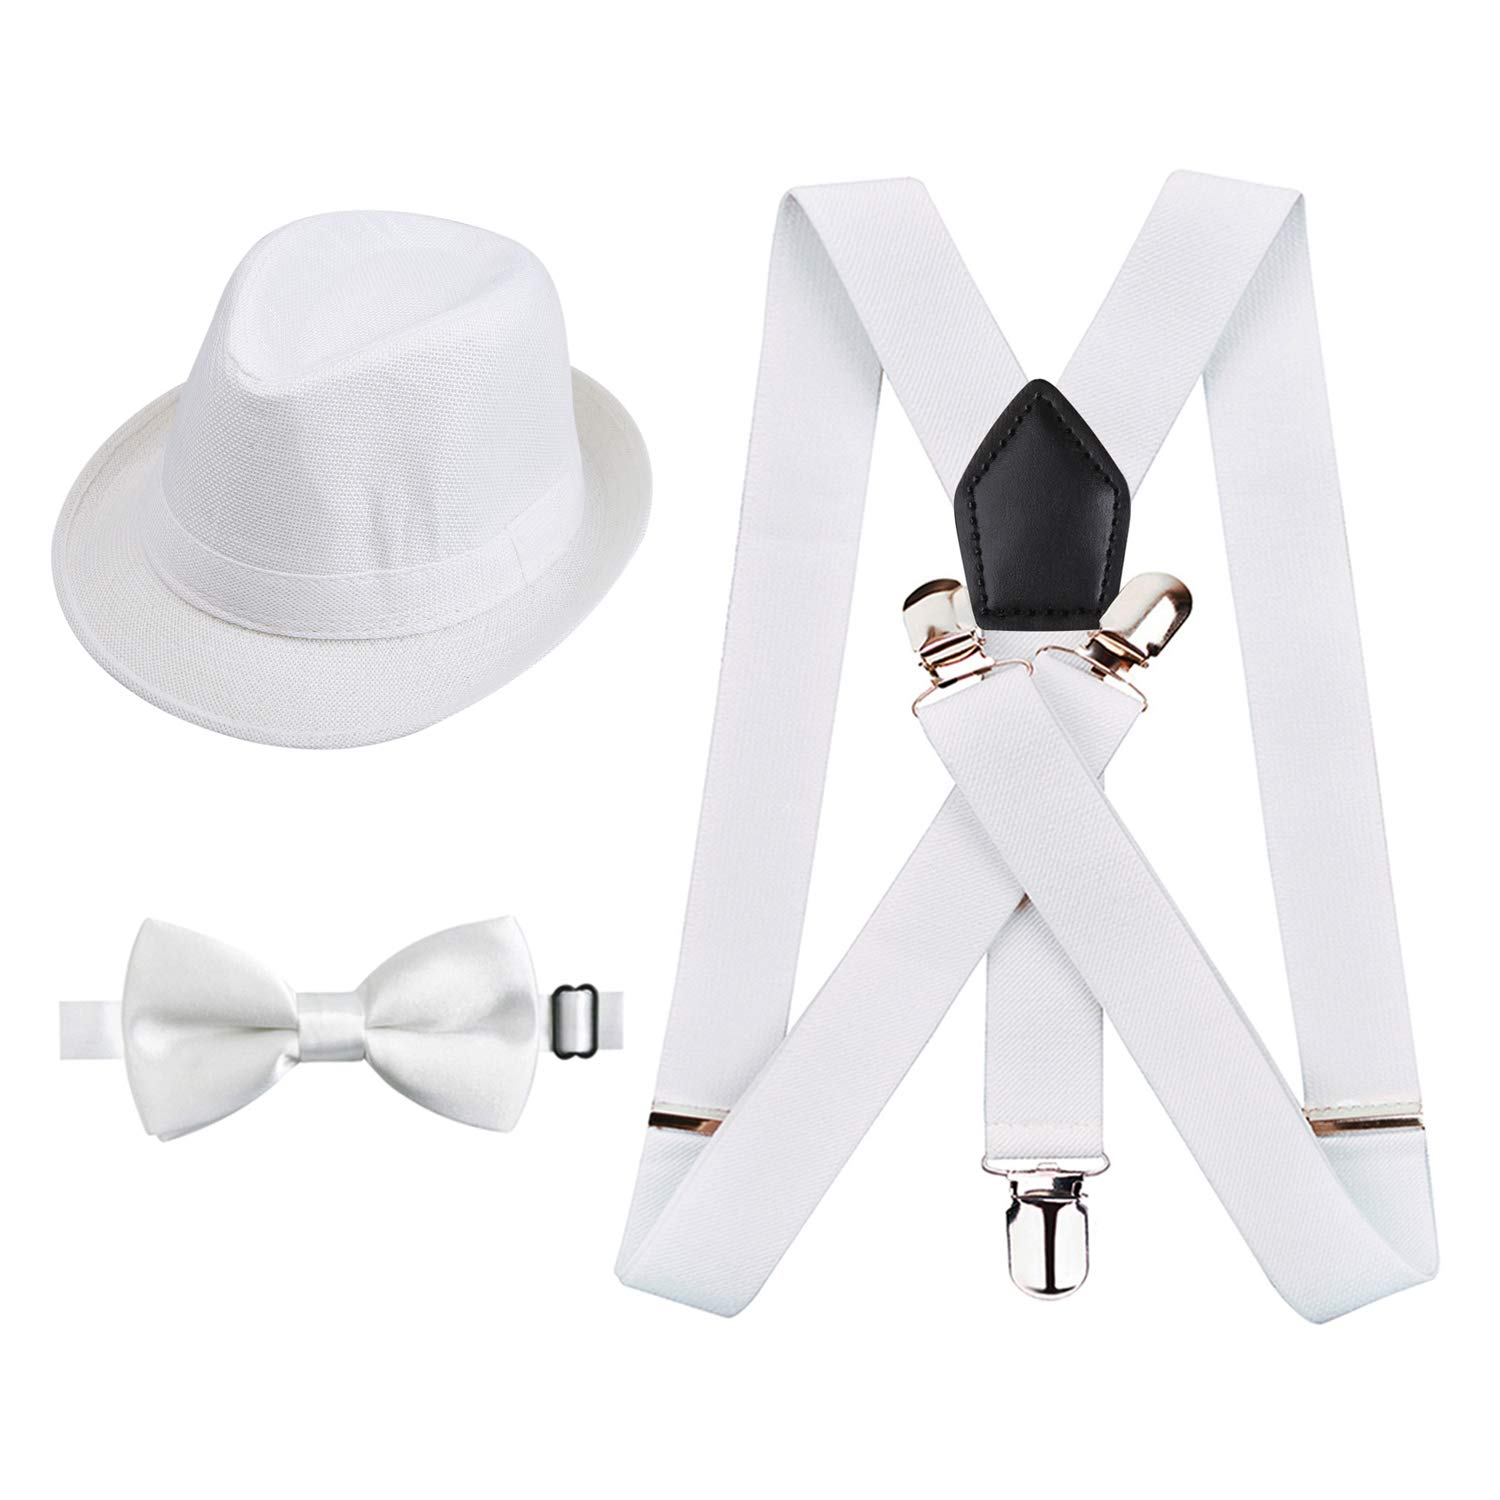 Black-White tie Alizeal Kids Elastic Clip Suspenders with Pre-tied Bow tie and Hat Set